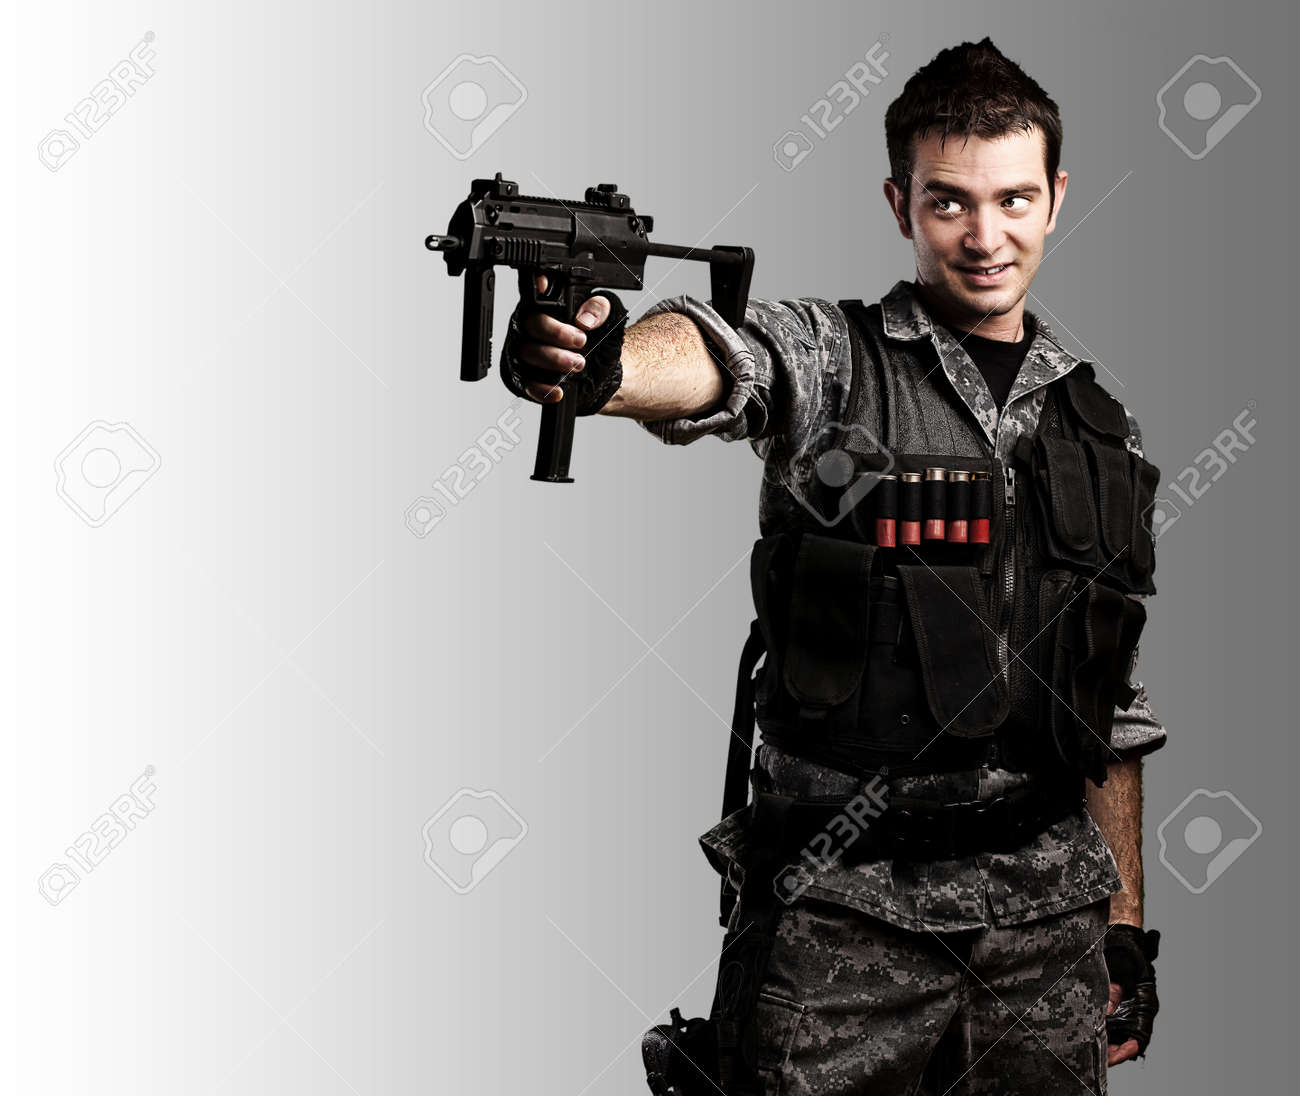 portrait of young soldier smiling with a rifle against a grey background Stock Photo - 11490048